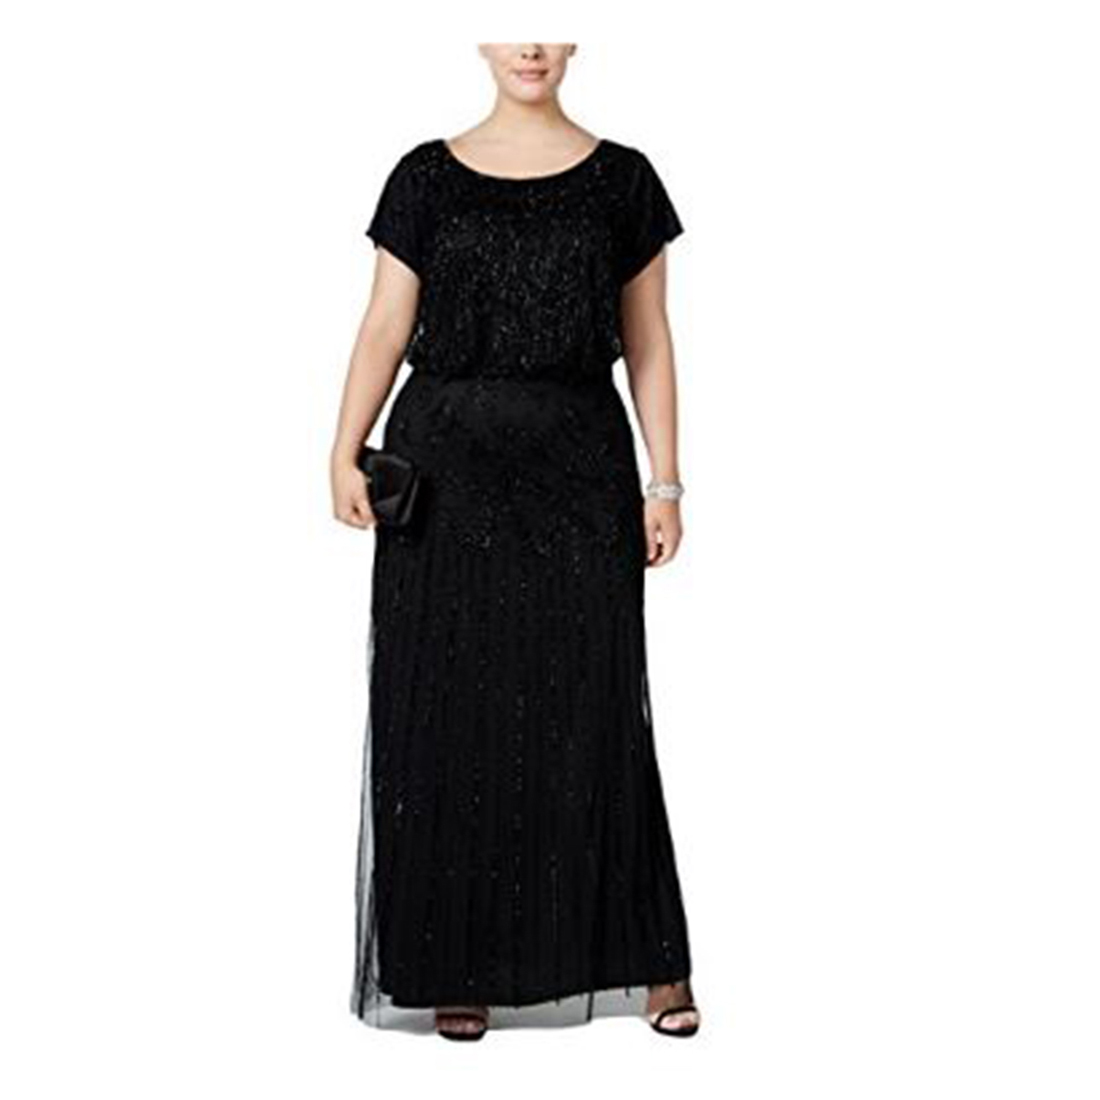 Adrianna Papell Women\'s L/s Lace Gown With Beaded Detail 6m Black | eBay